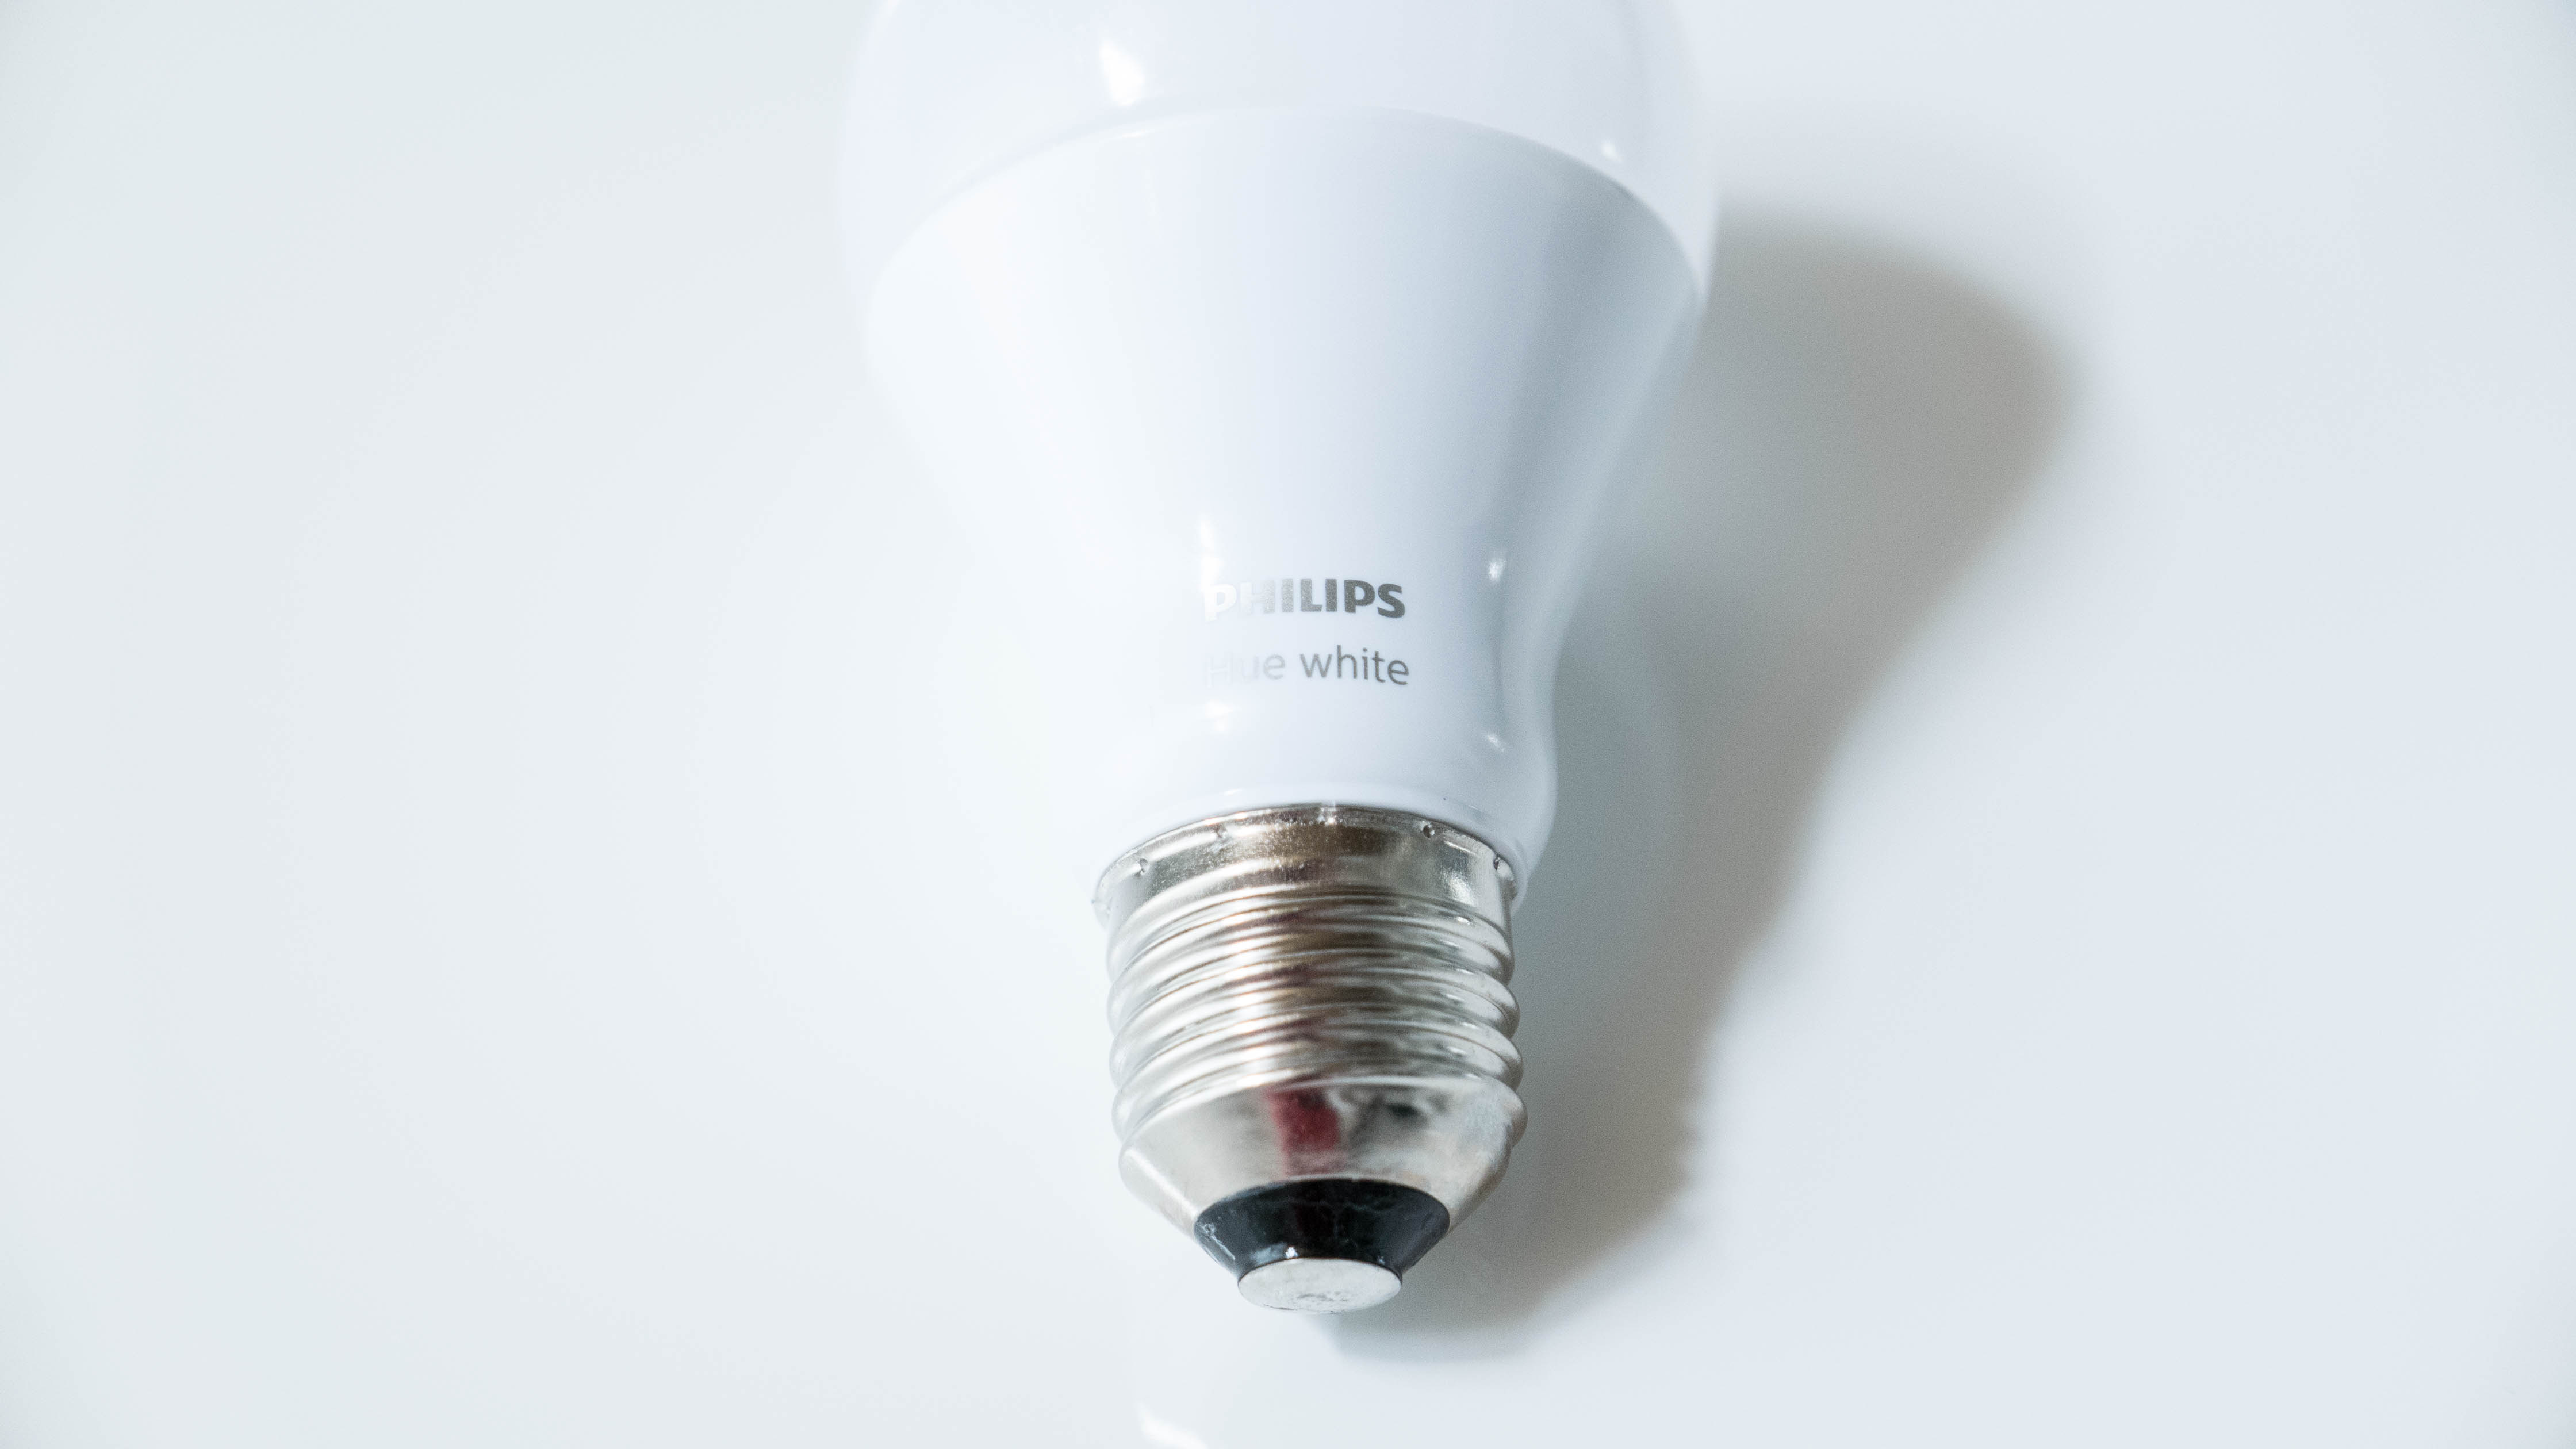 Philips-Hue-White-Bulb-schräg